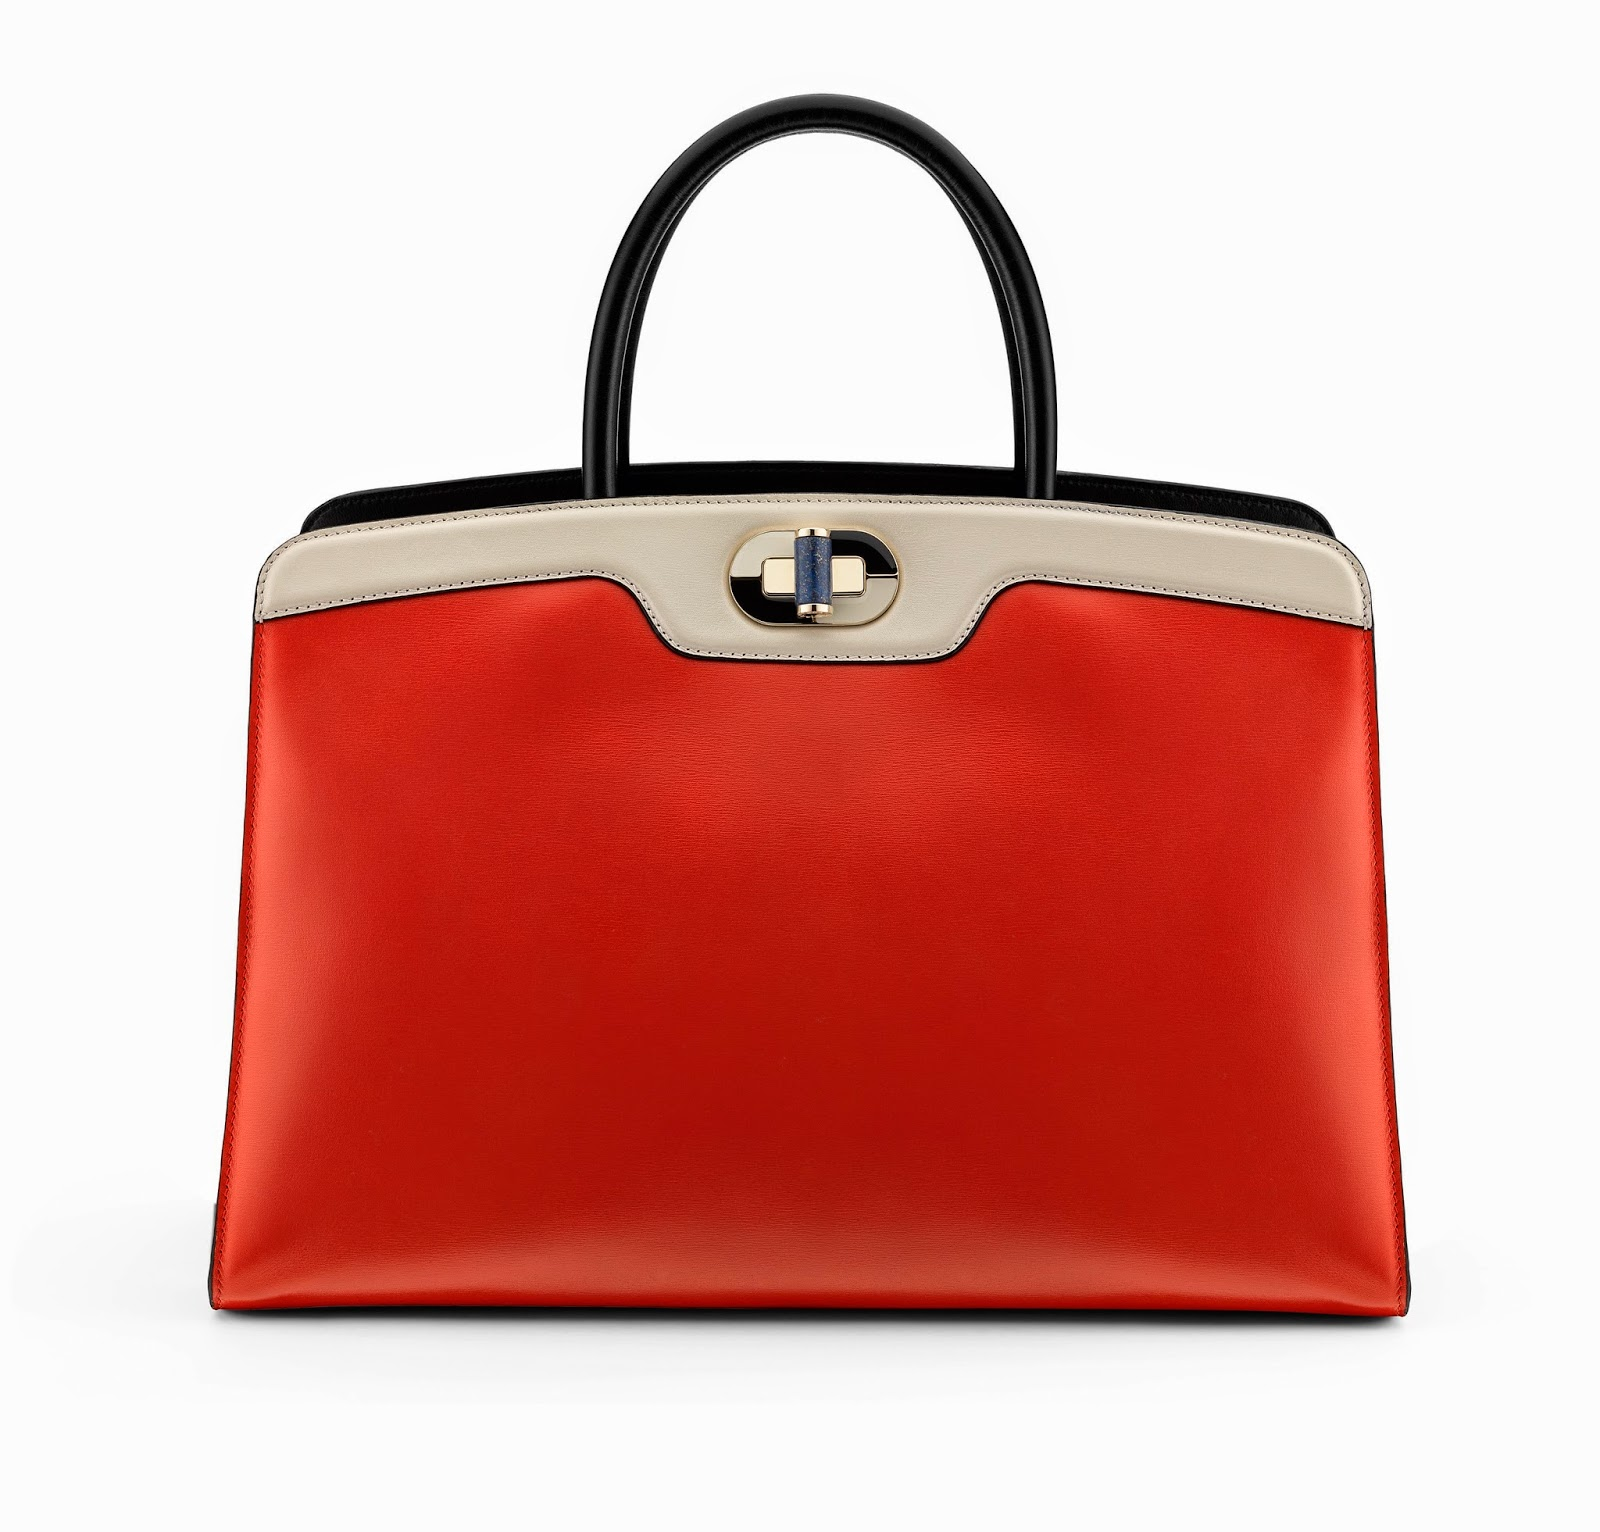 Bulgari's Fall/Winter 2014 Bags